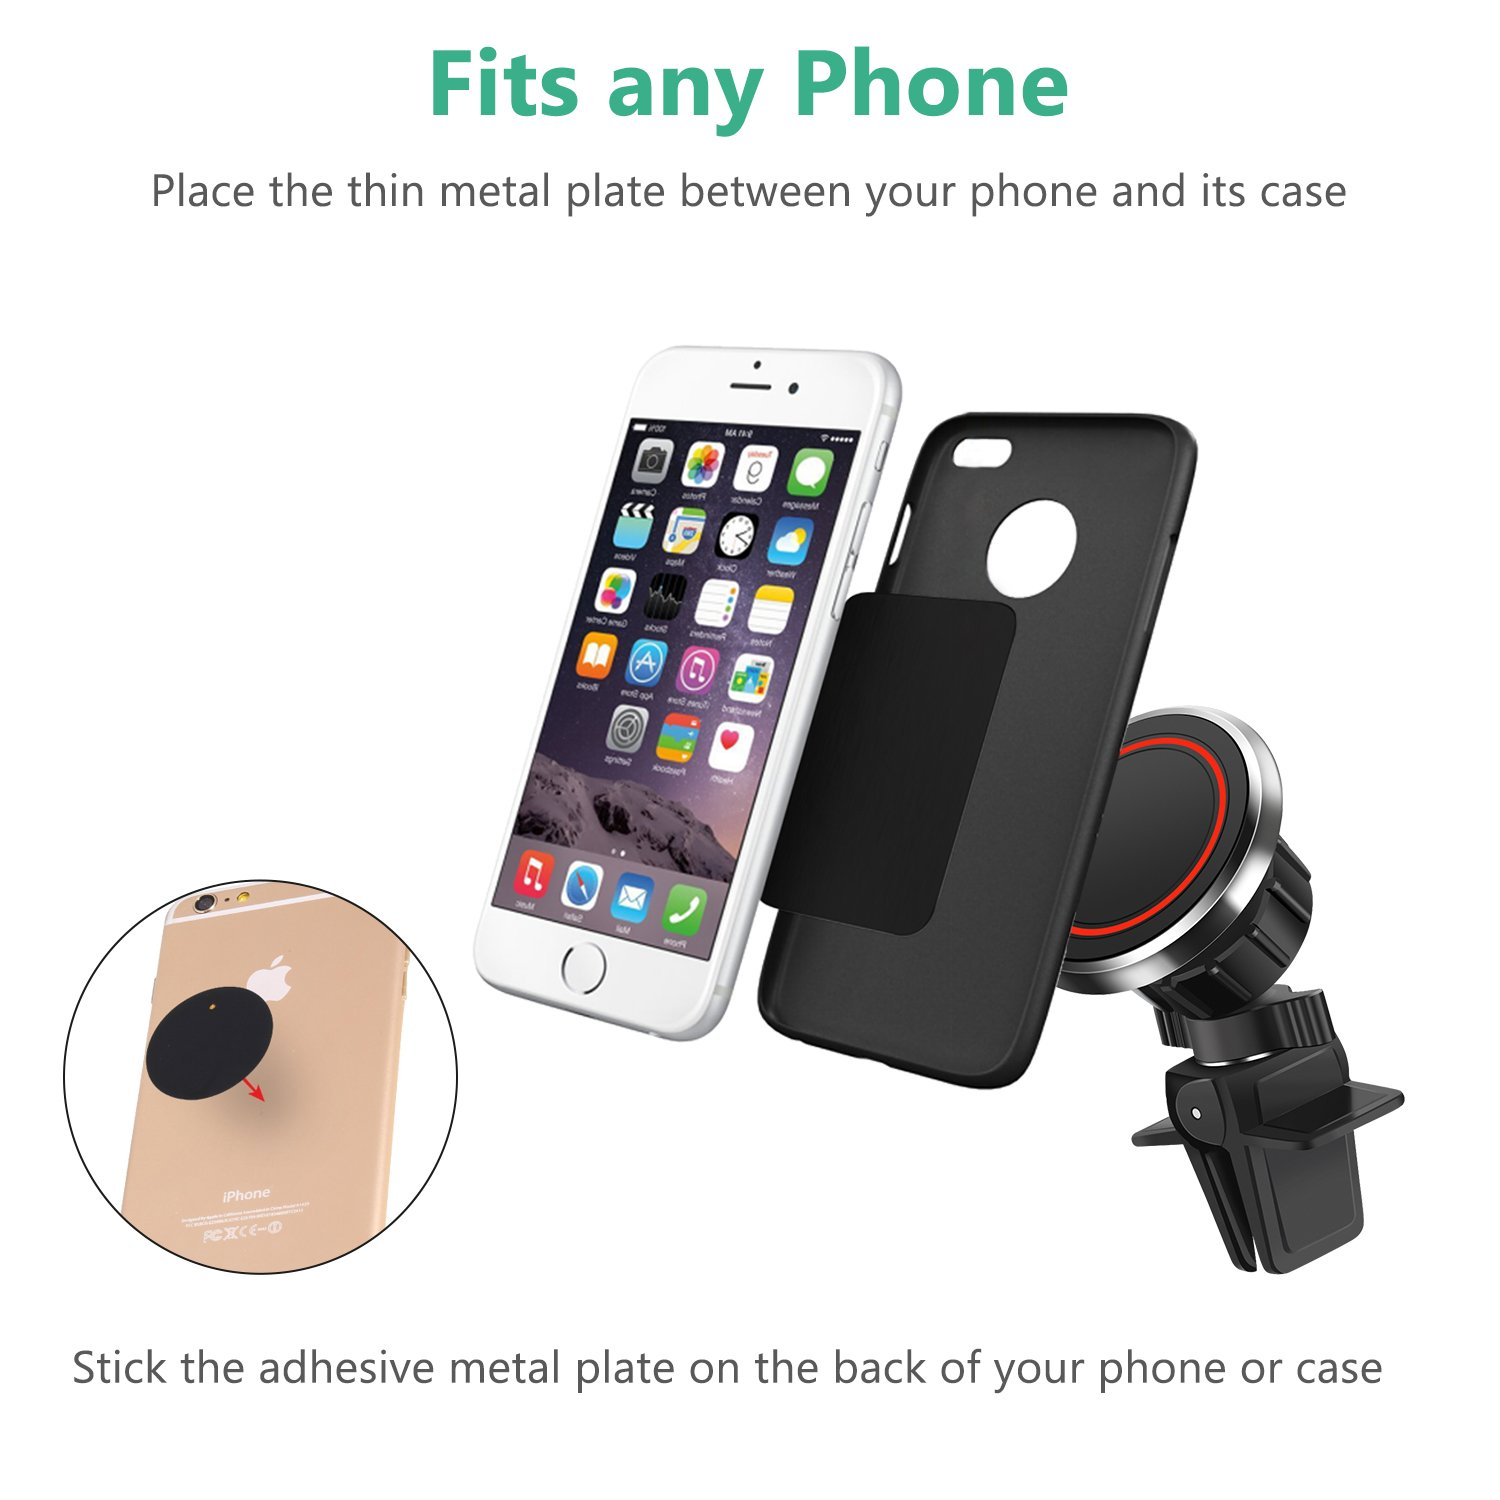 8 Plus Black Wireless Car Charger 2 Packs Cell Phone Holder for Car,3-in-1 ARW Gravity Auto-Clamping Air Vent Car Charger Phone Mount Cradle for iPhone X S8 Plus and More 7//7 Plus Samsung Galaxy S9 S9 Plus S8